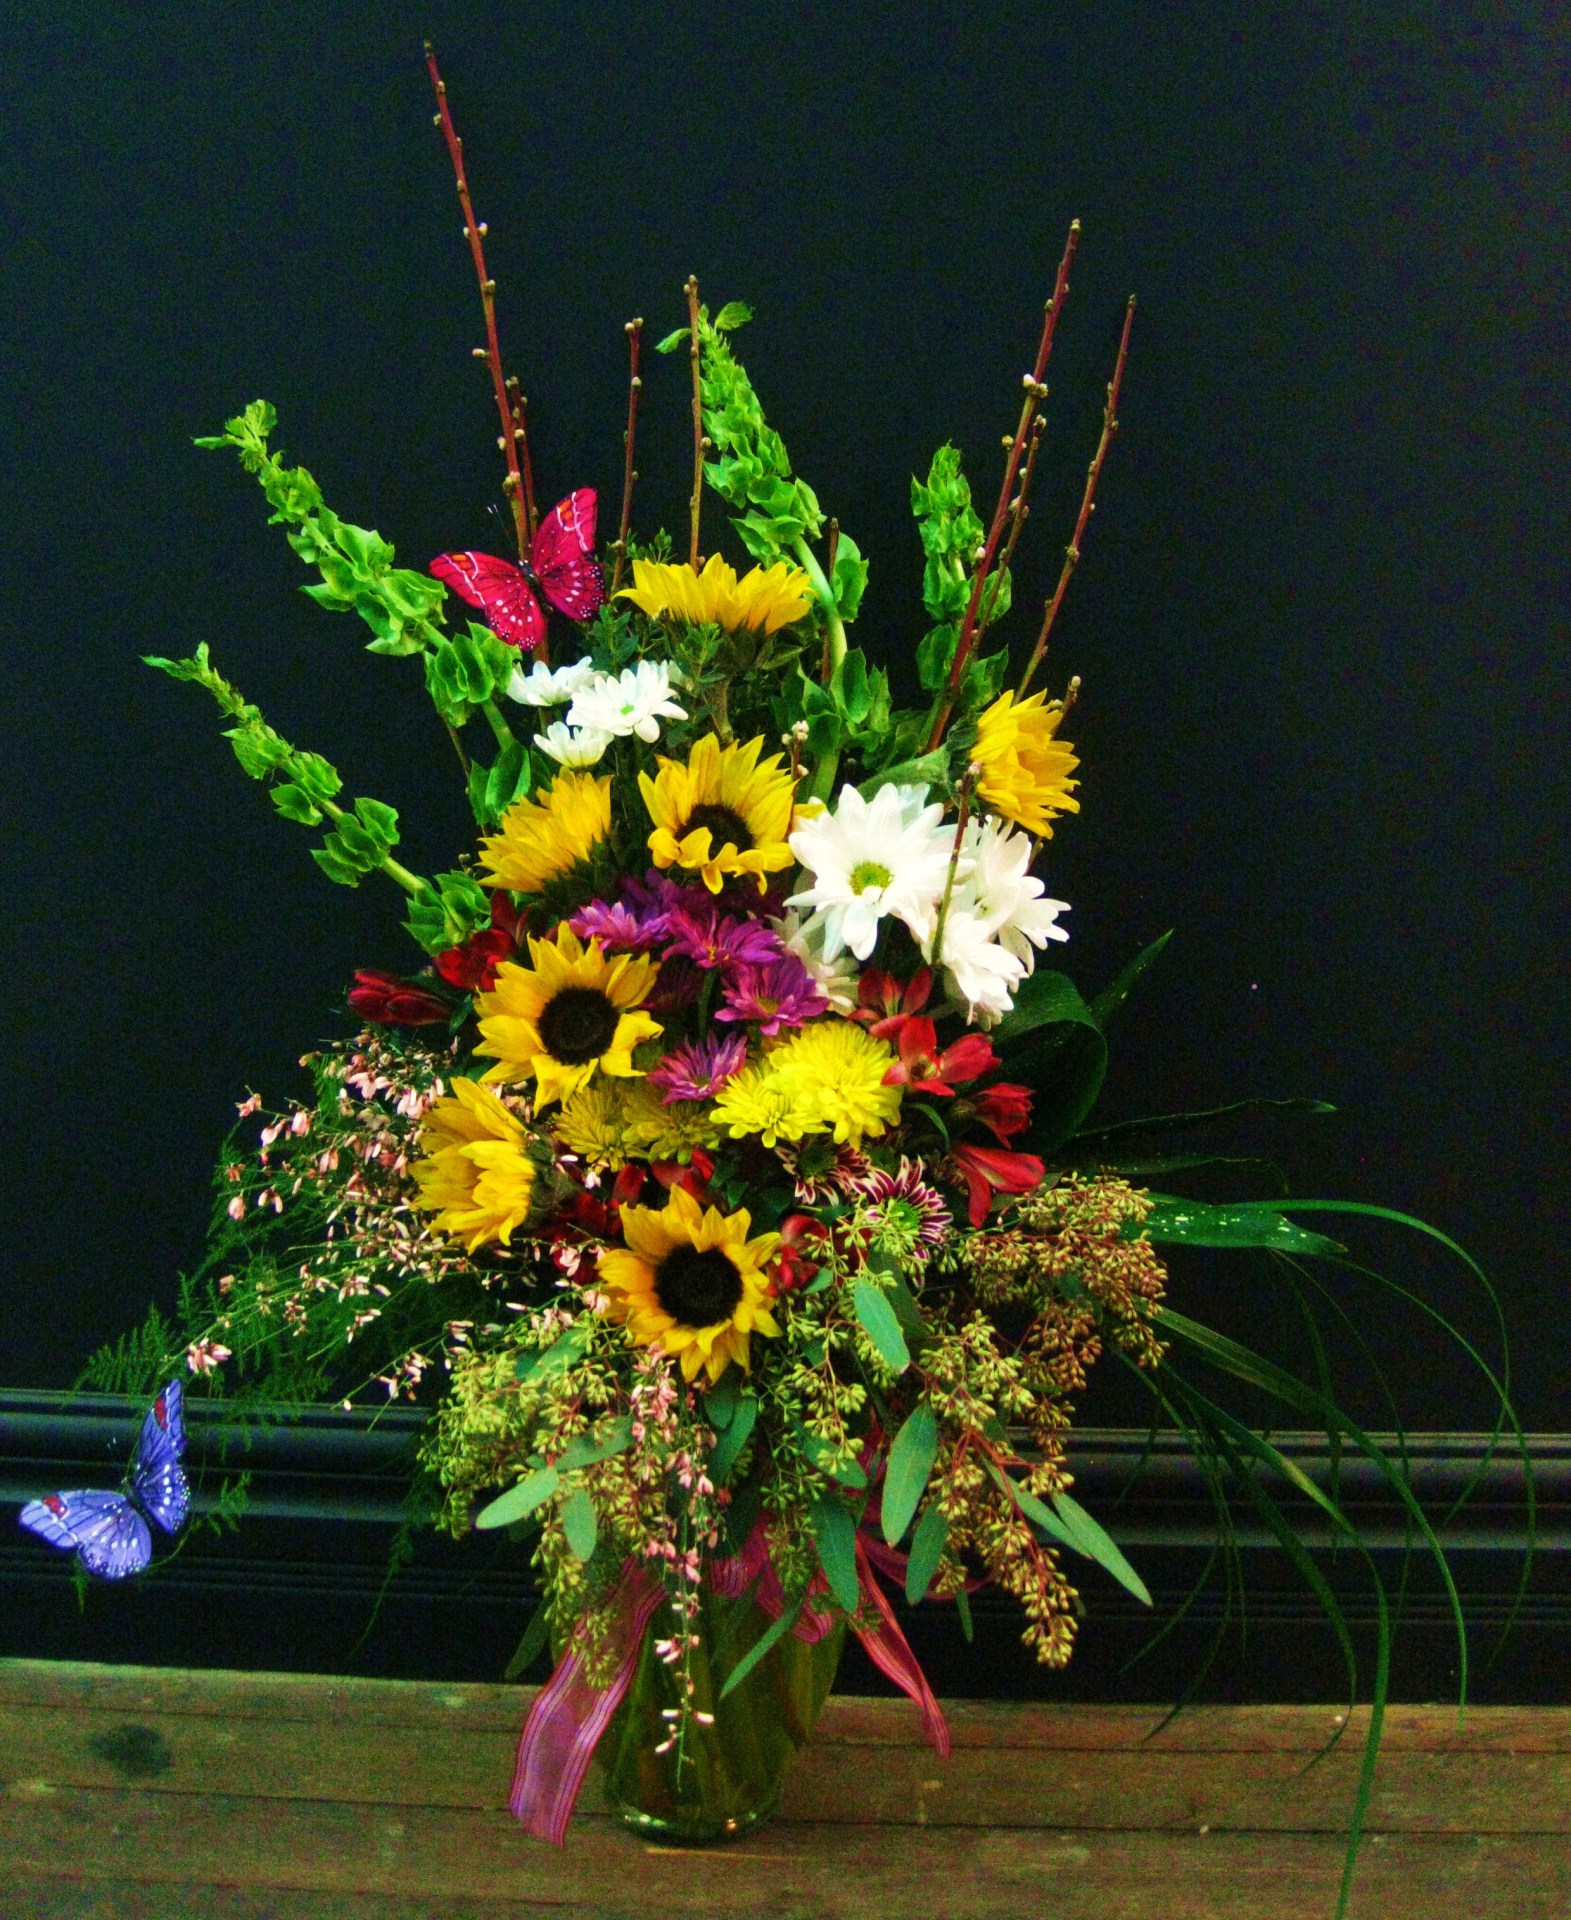 halloween, fall, autumn, happy, cheerful flowers, bouquet, entertainers, thanksgiving, sunflowers, vase, lumsden, regina, craven, regina beach, buena vista